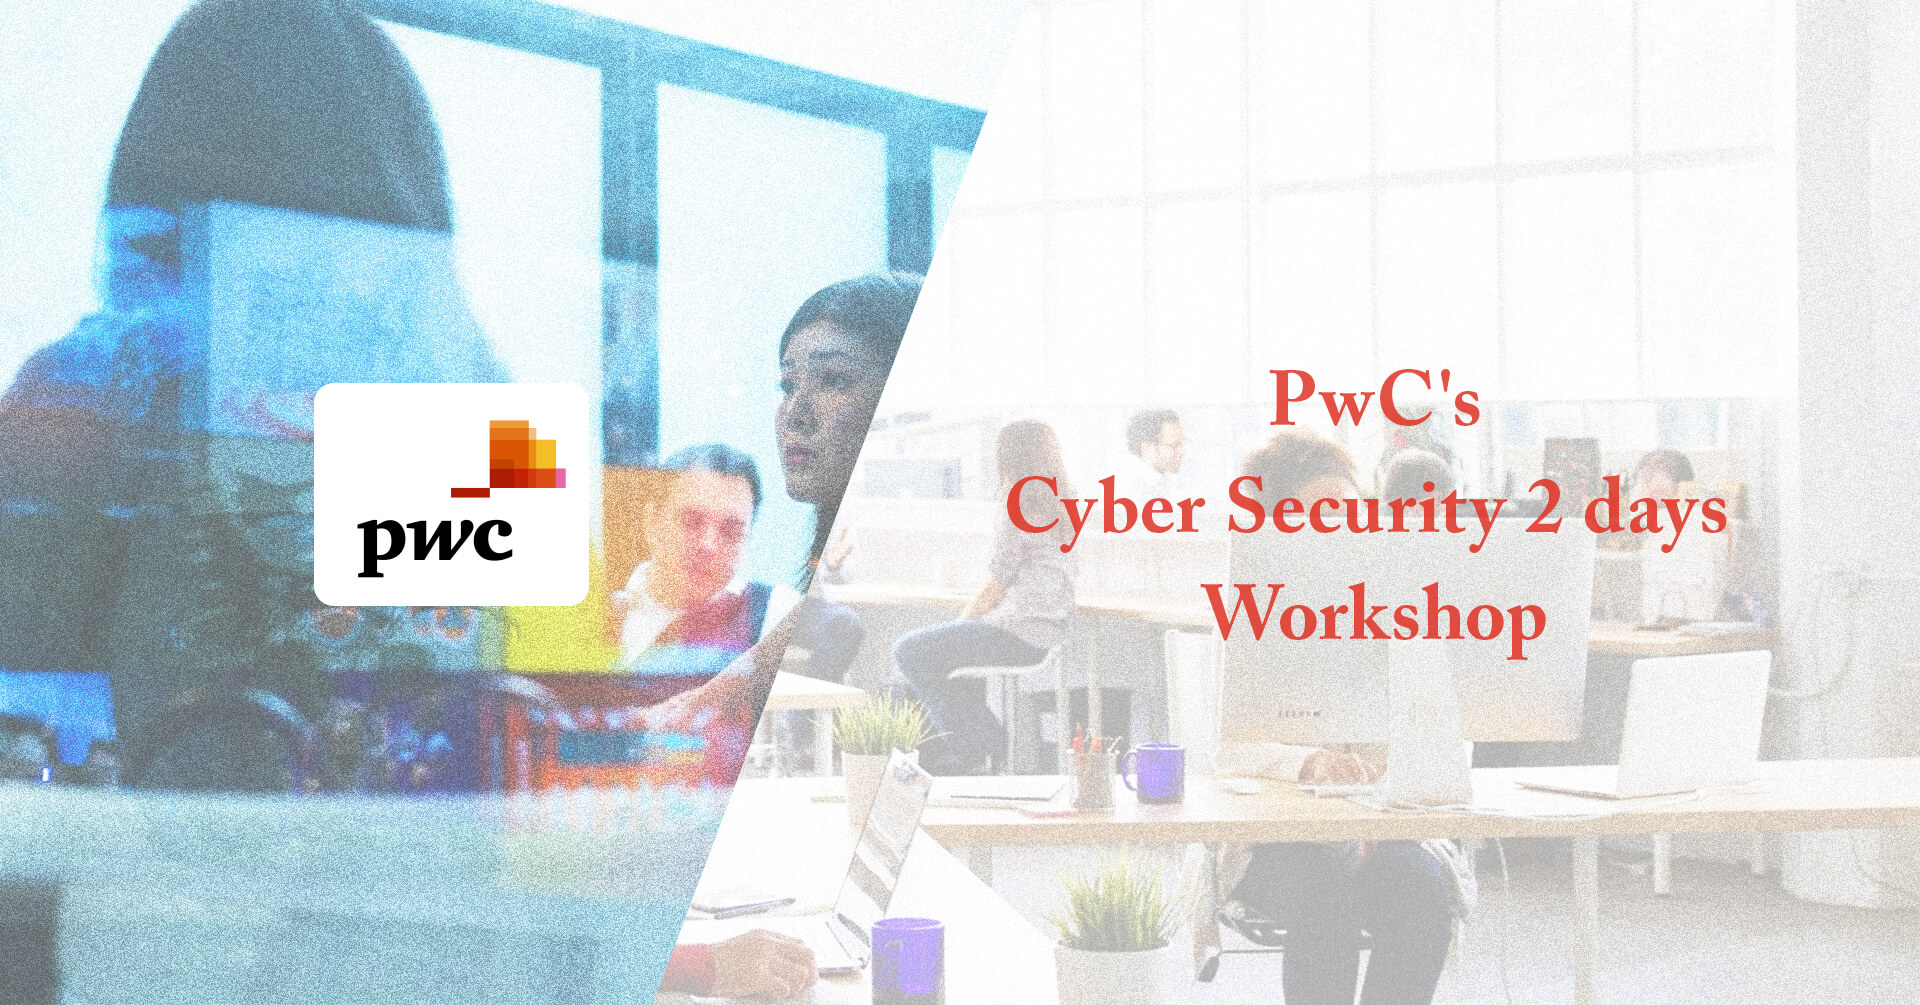 PwC's Cyber Security 2 days Workshop